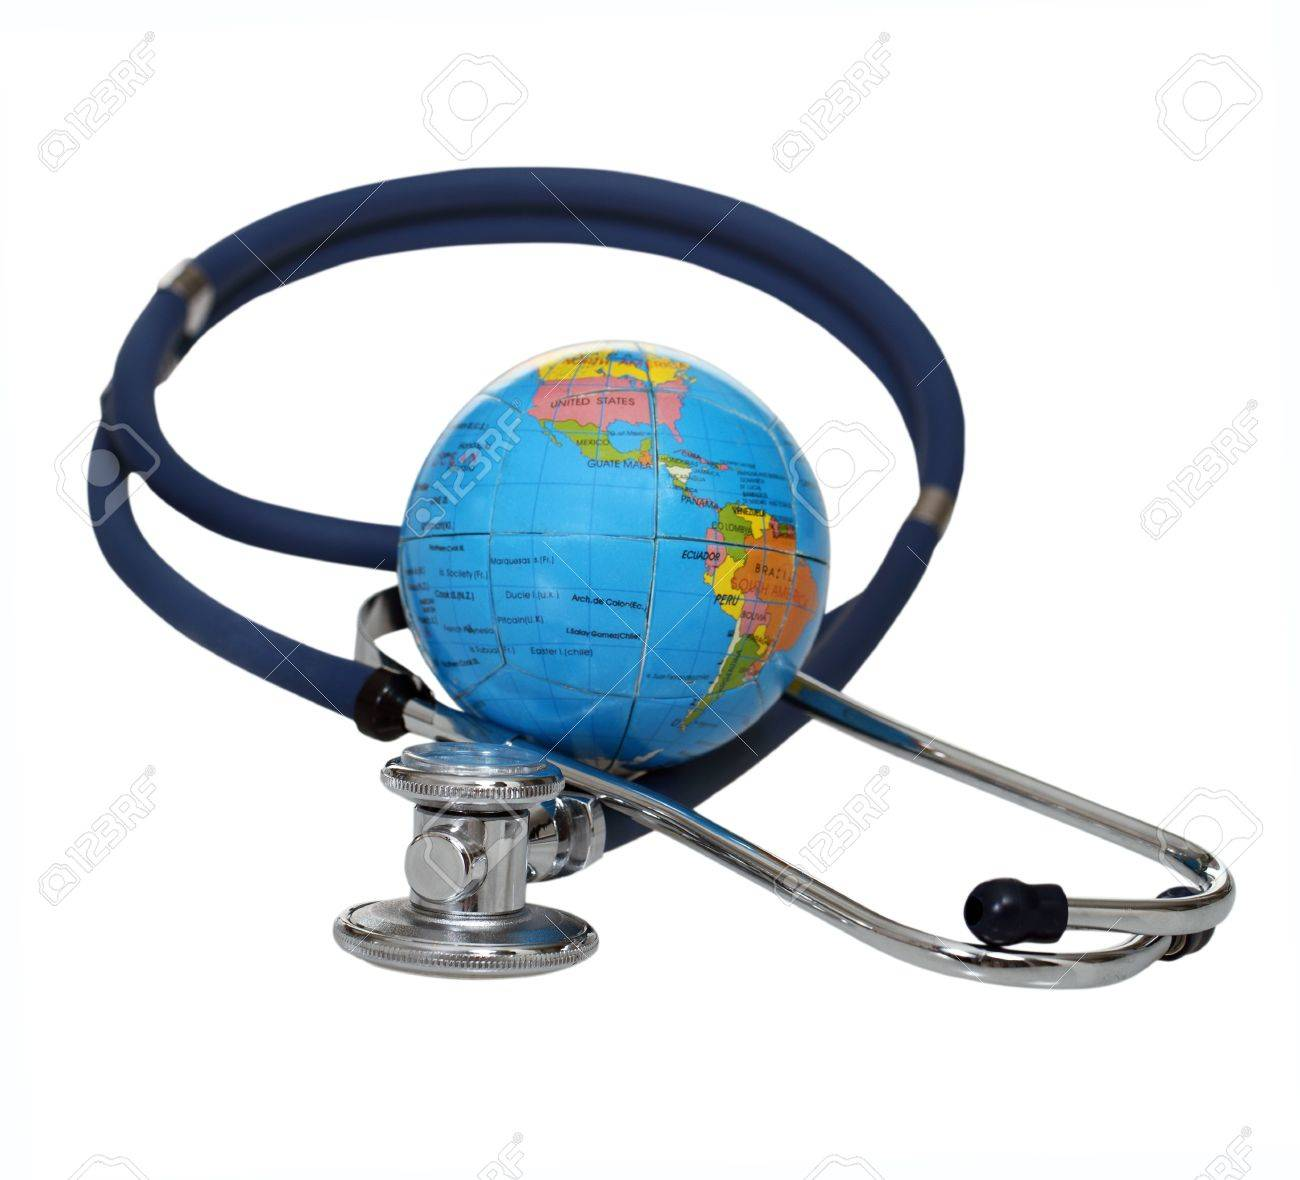 Stethoscope with globe isolated on a white background Stock Photo - 10934017